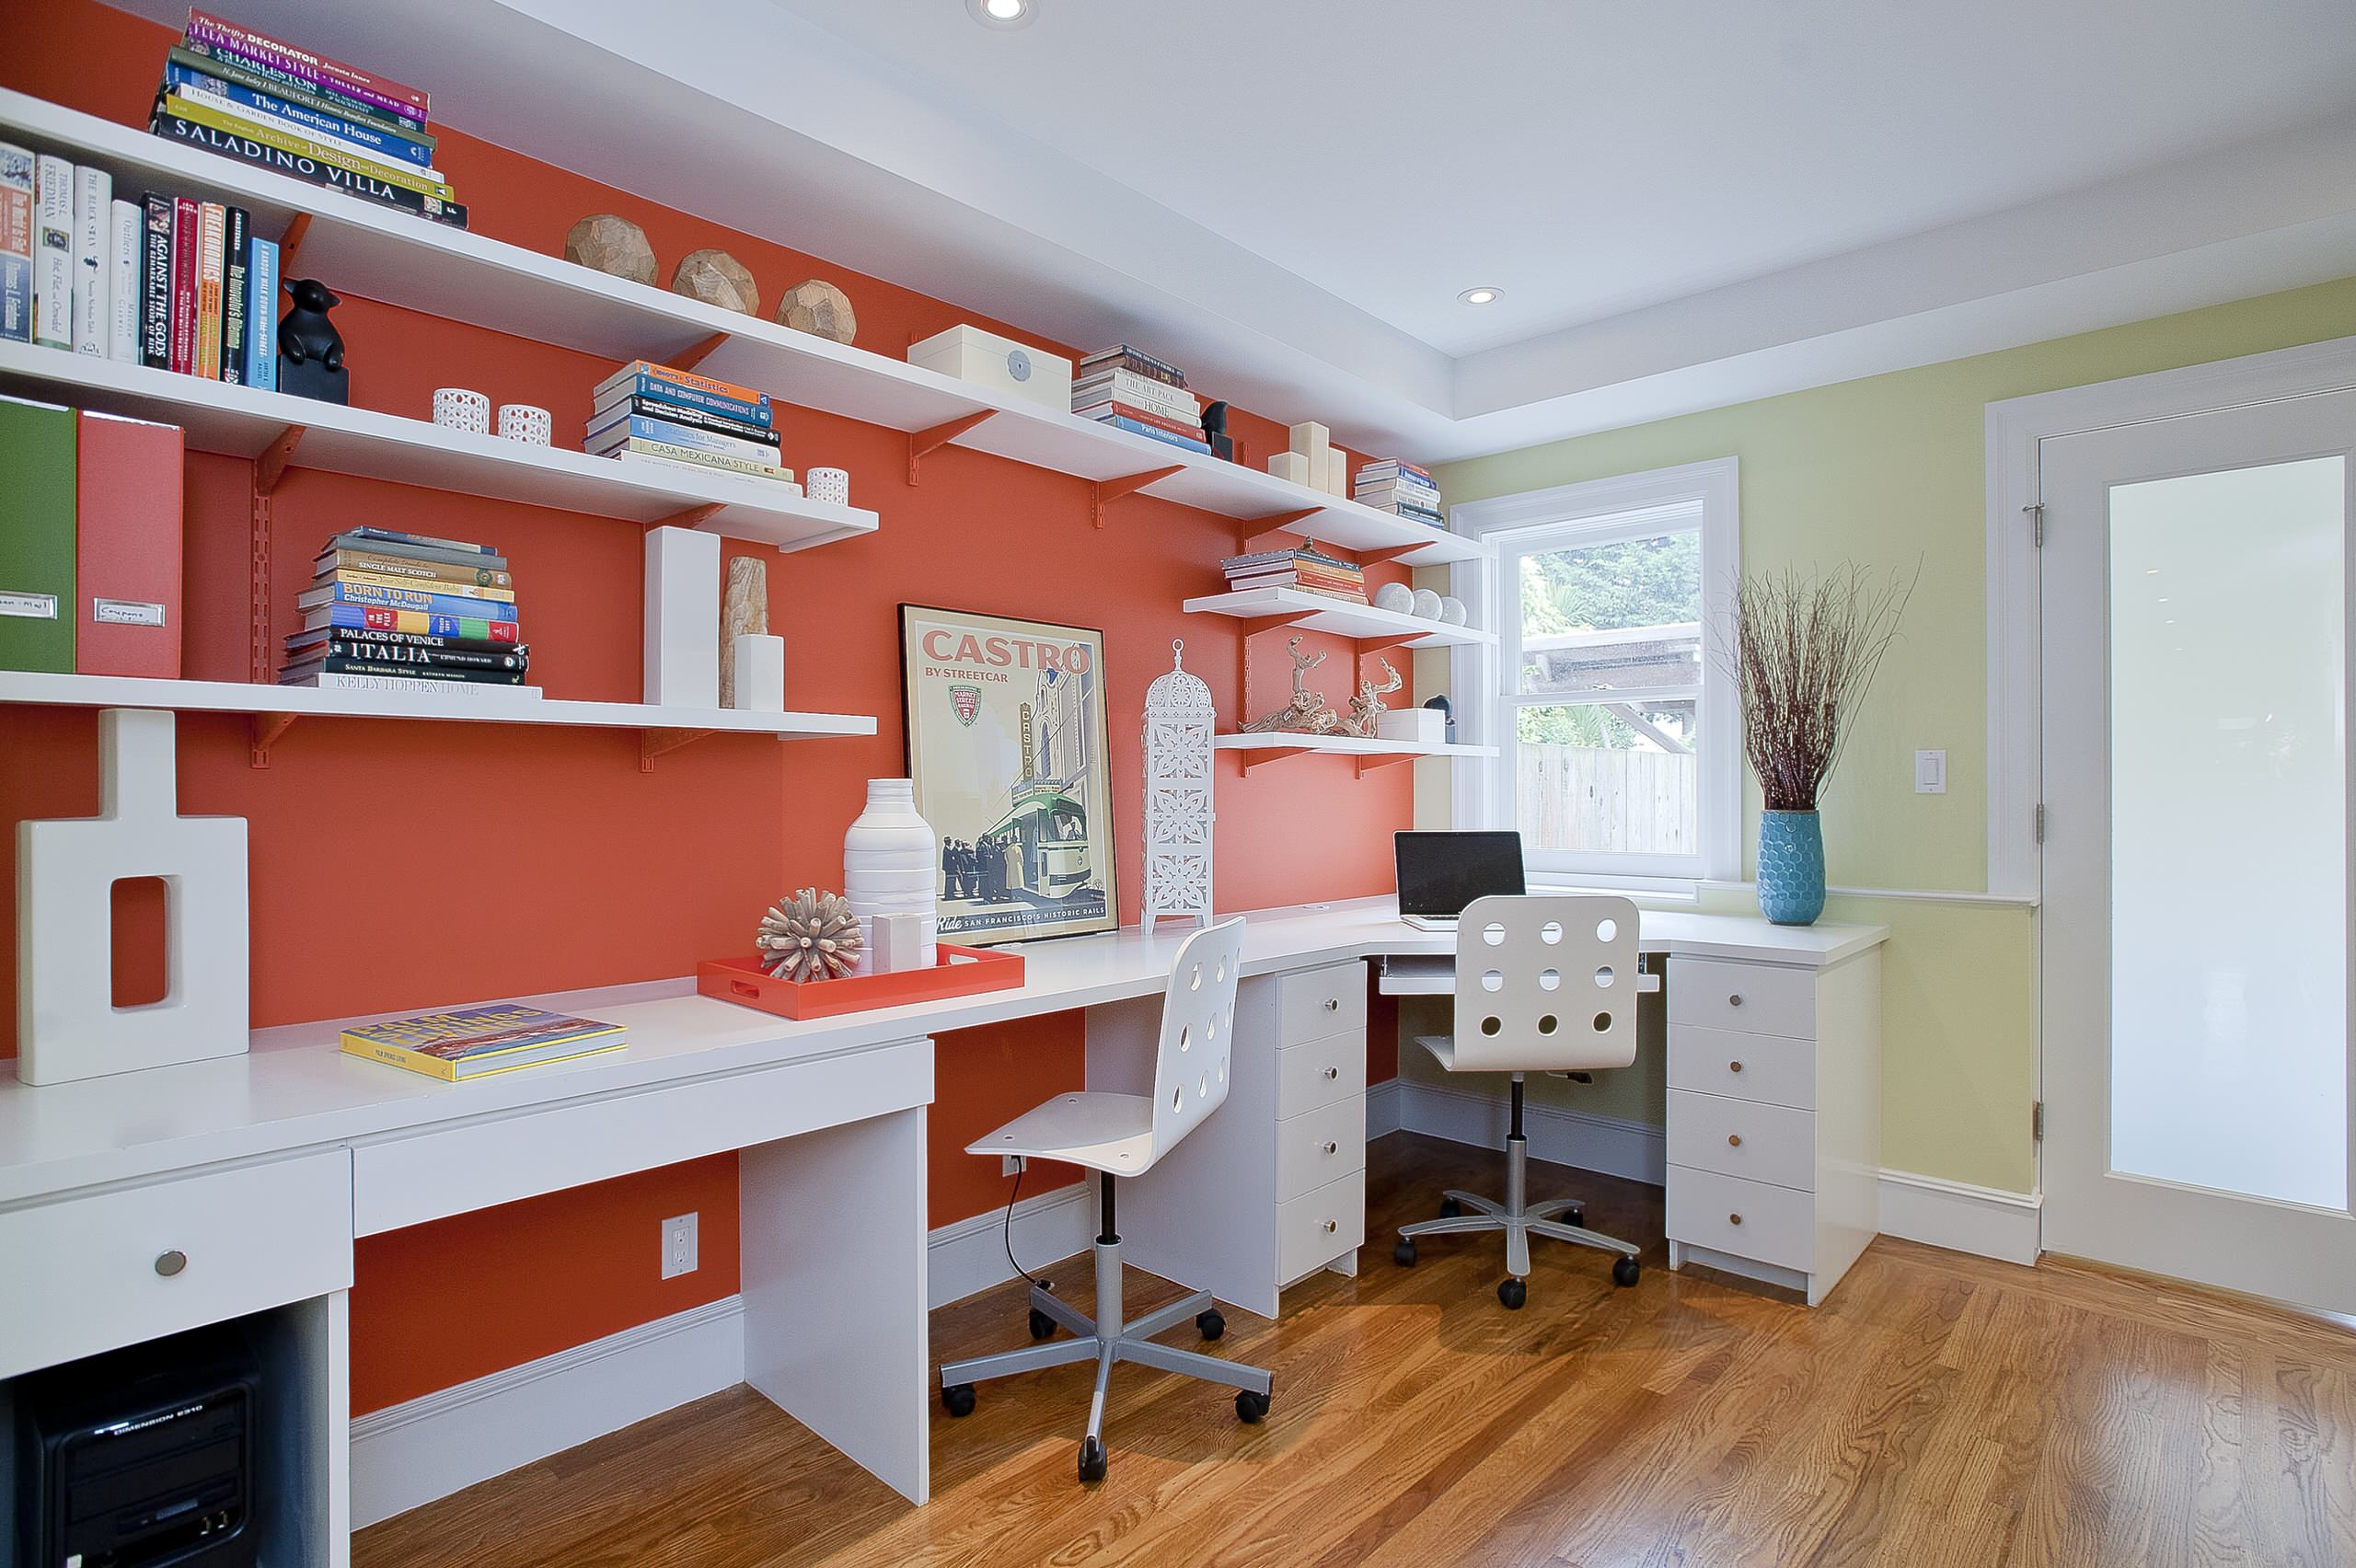 75 Beautiful Home Office With Orange Walls Pictures Ideas March 2021 Houzz